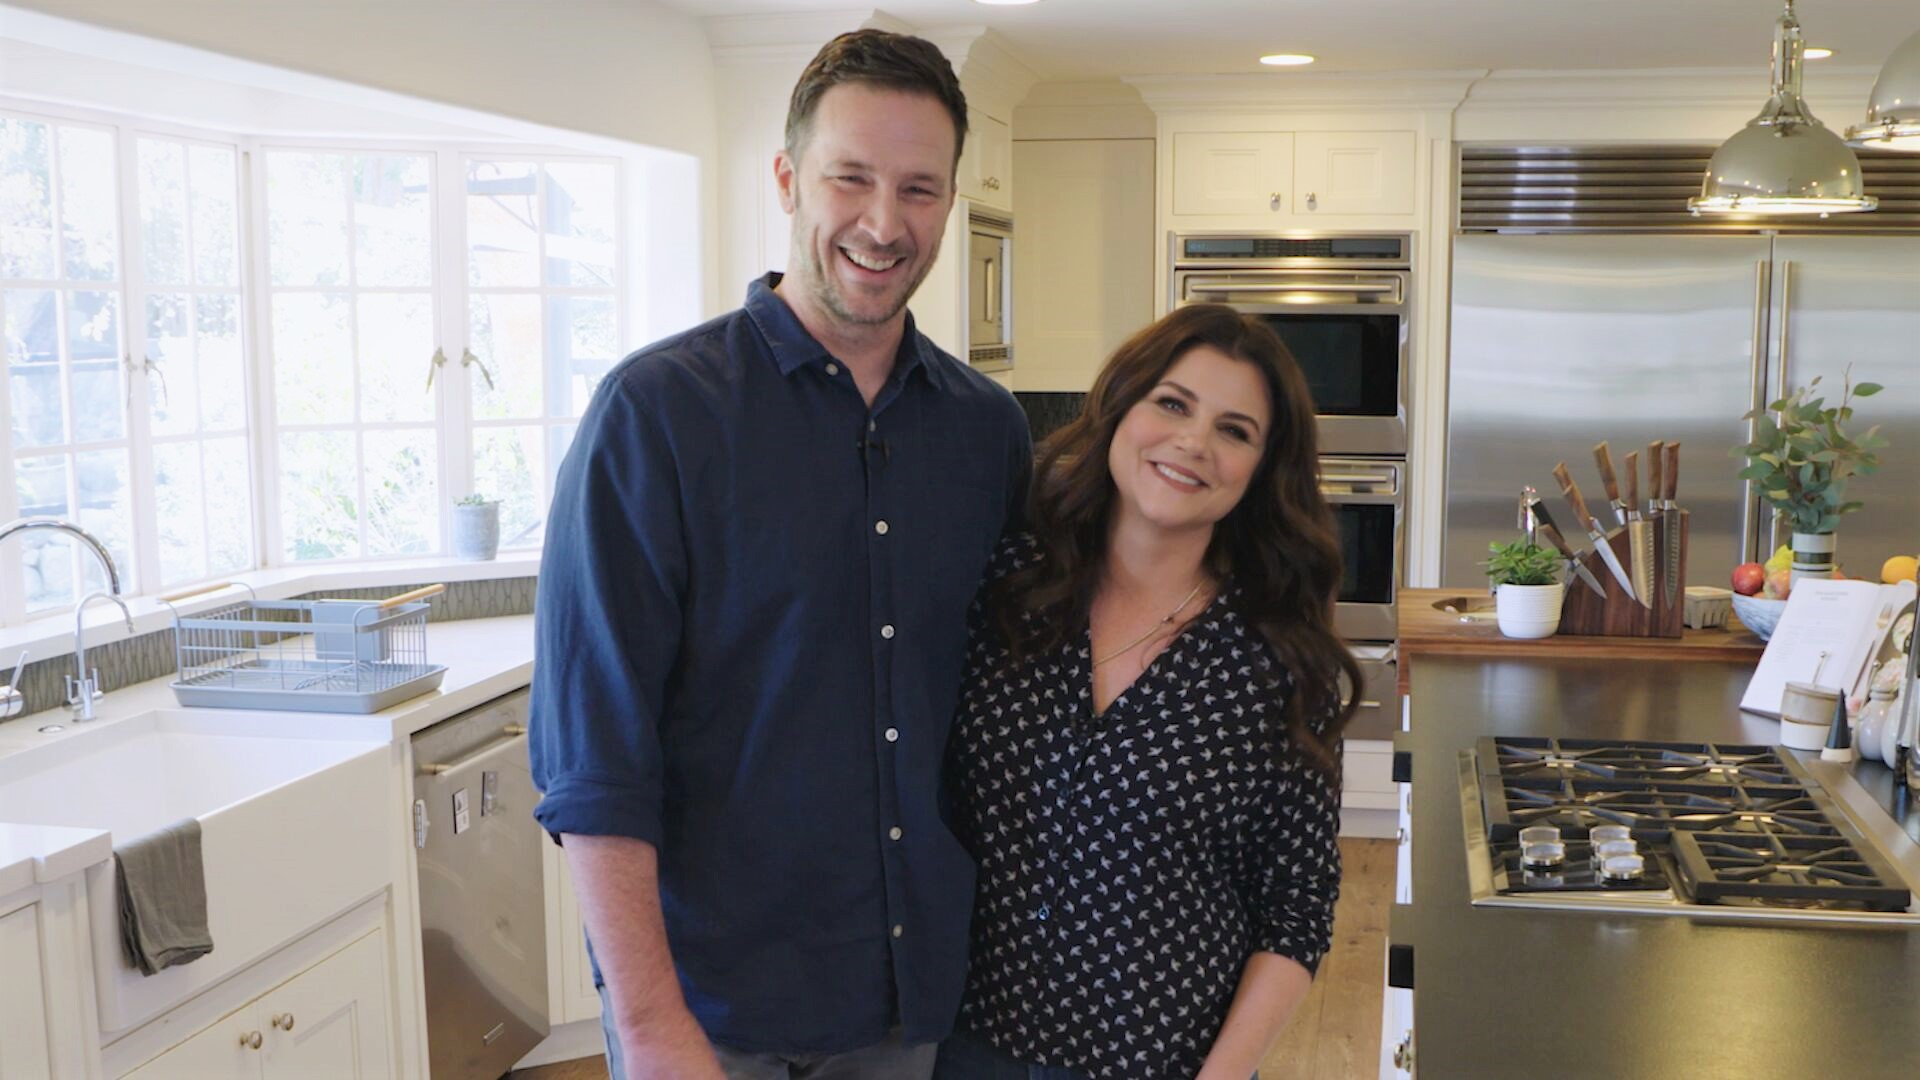 Tiffani Thiessen Shares Her Genius Secret to Avoiding Screen Time With Kids